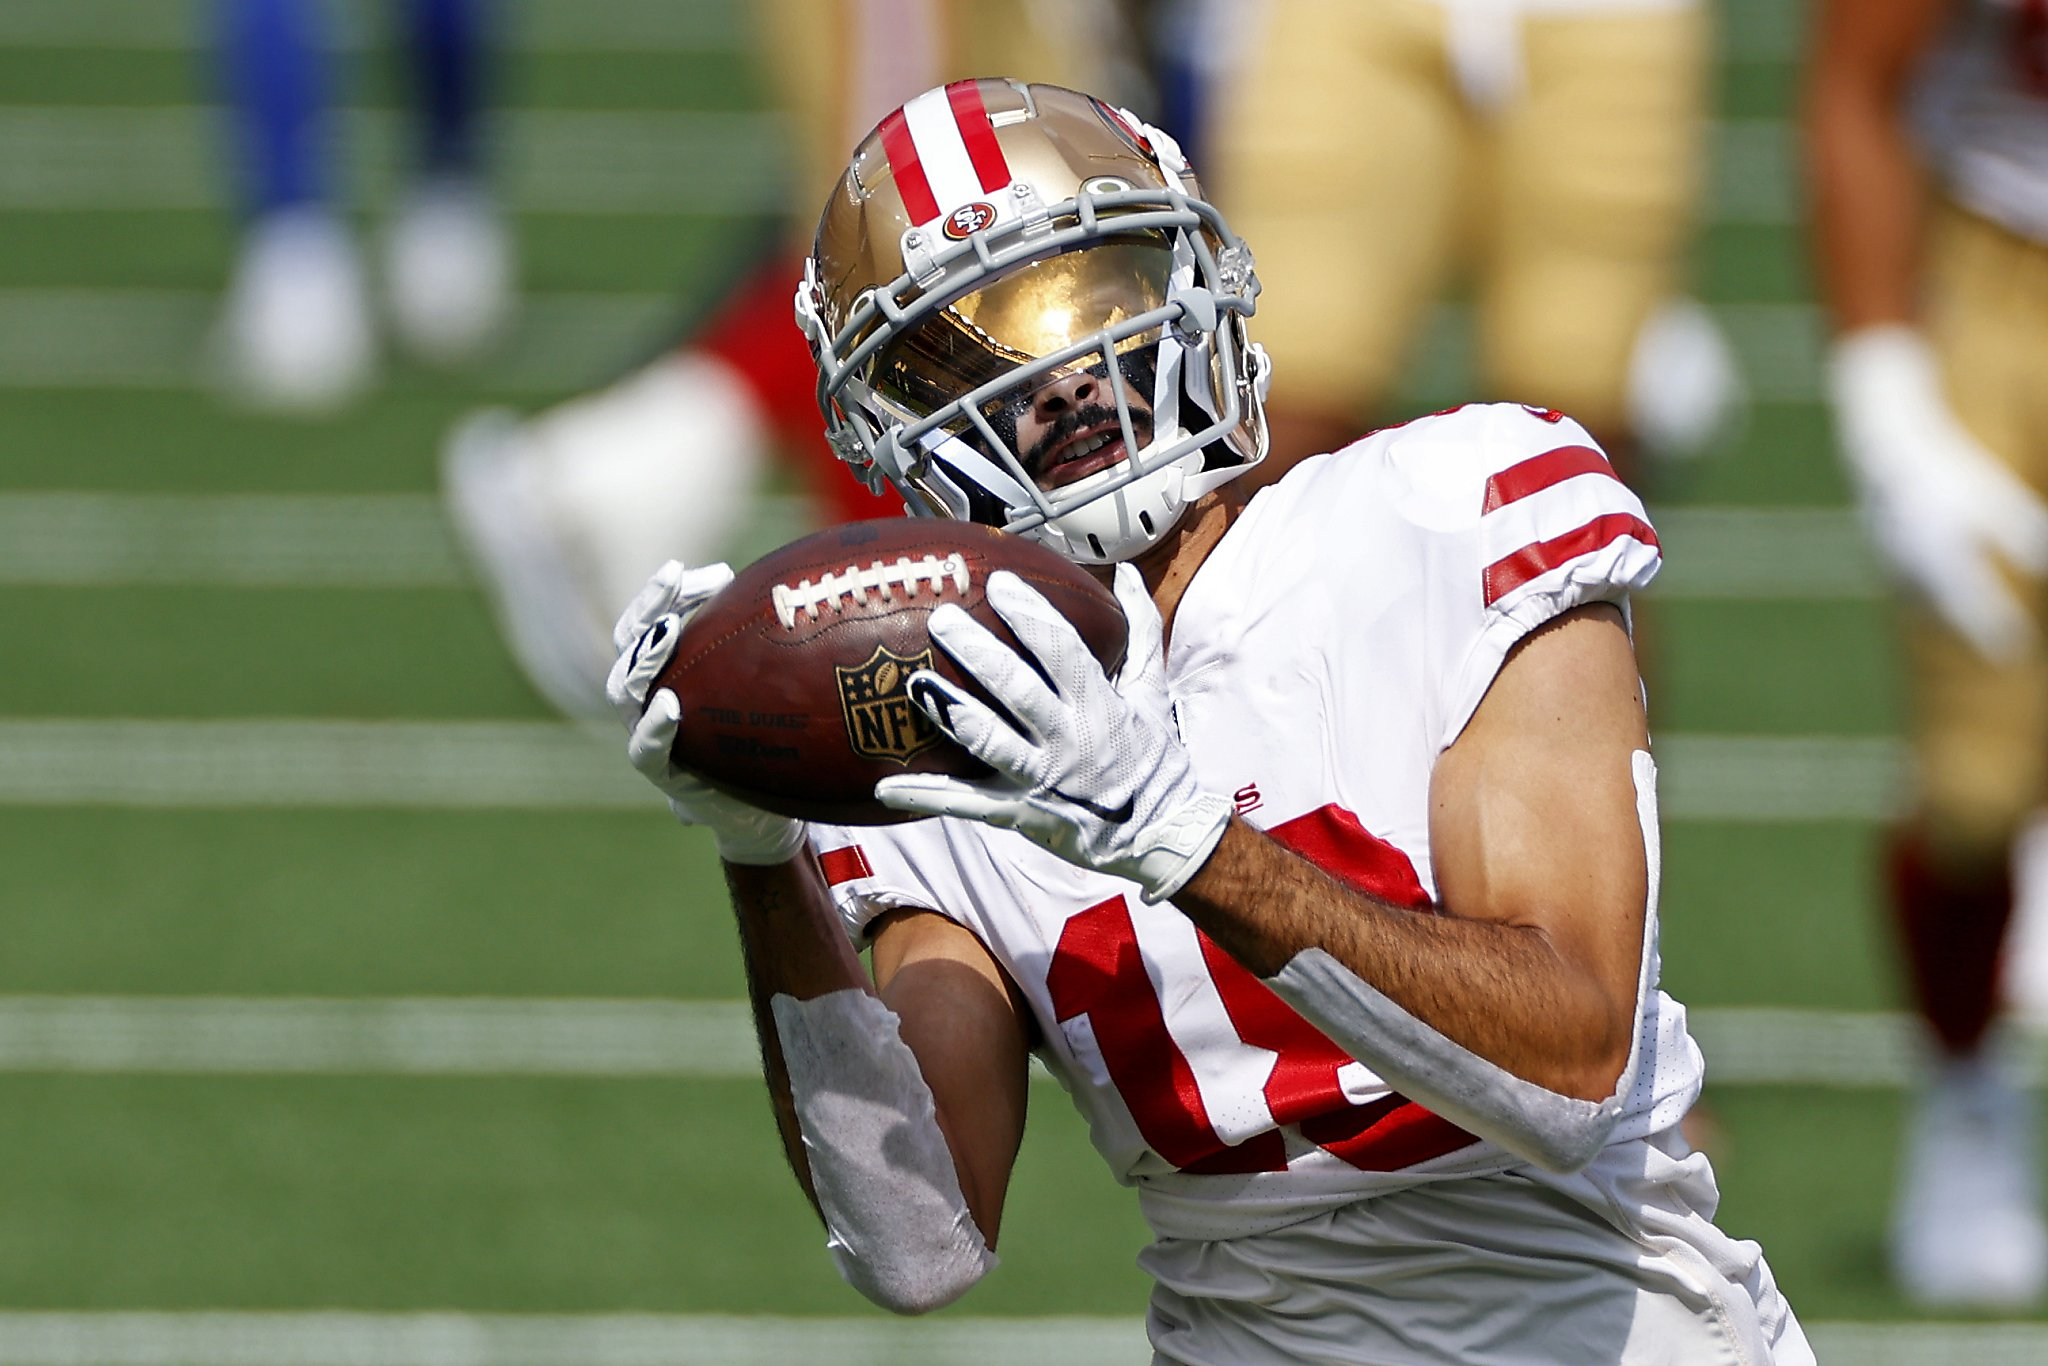 Shanahan cited improvement by Pettis, but receiver sits out another game